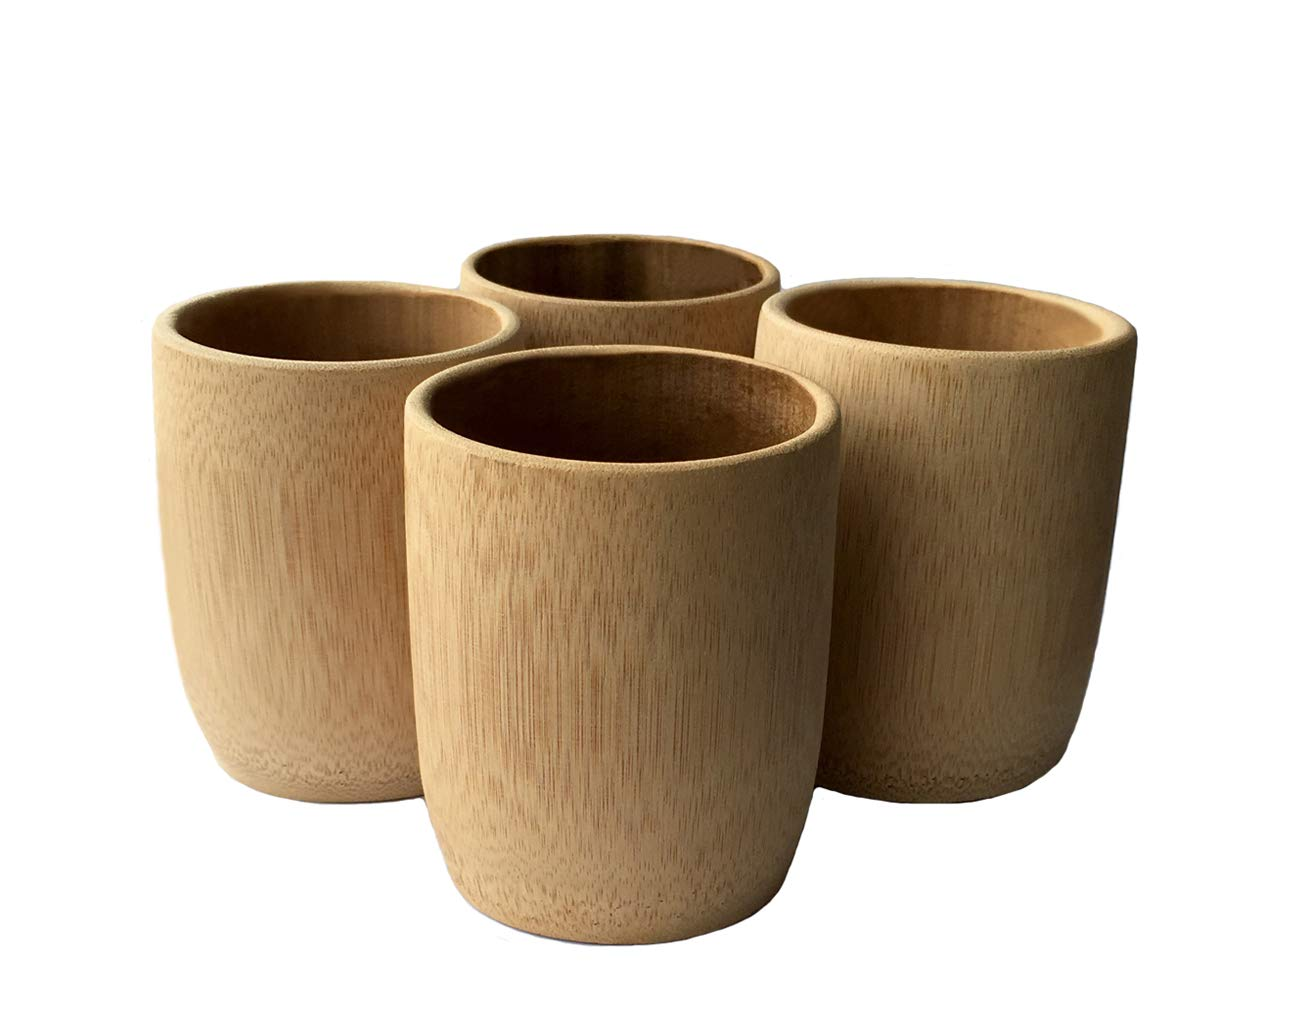 KCHAIN 4pcs Drinking Cups for Sake Coffee Tea (Bamboo cups)